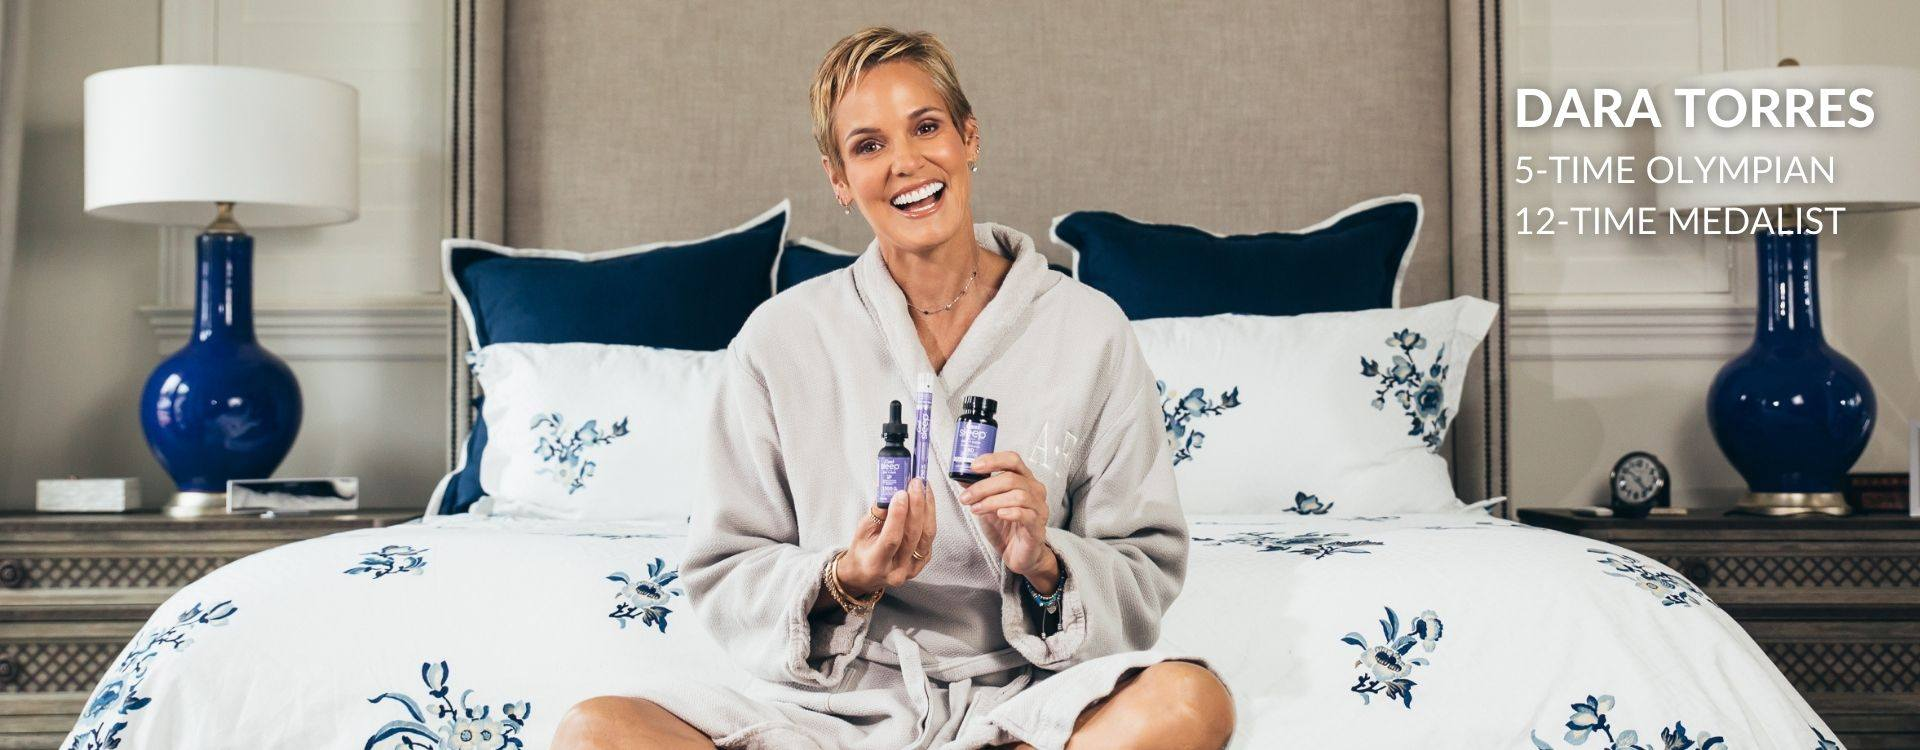 Dara Torres Joins CaniBrands as Chief Lifestyle & Wellness Officer